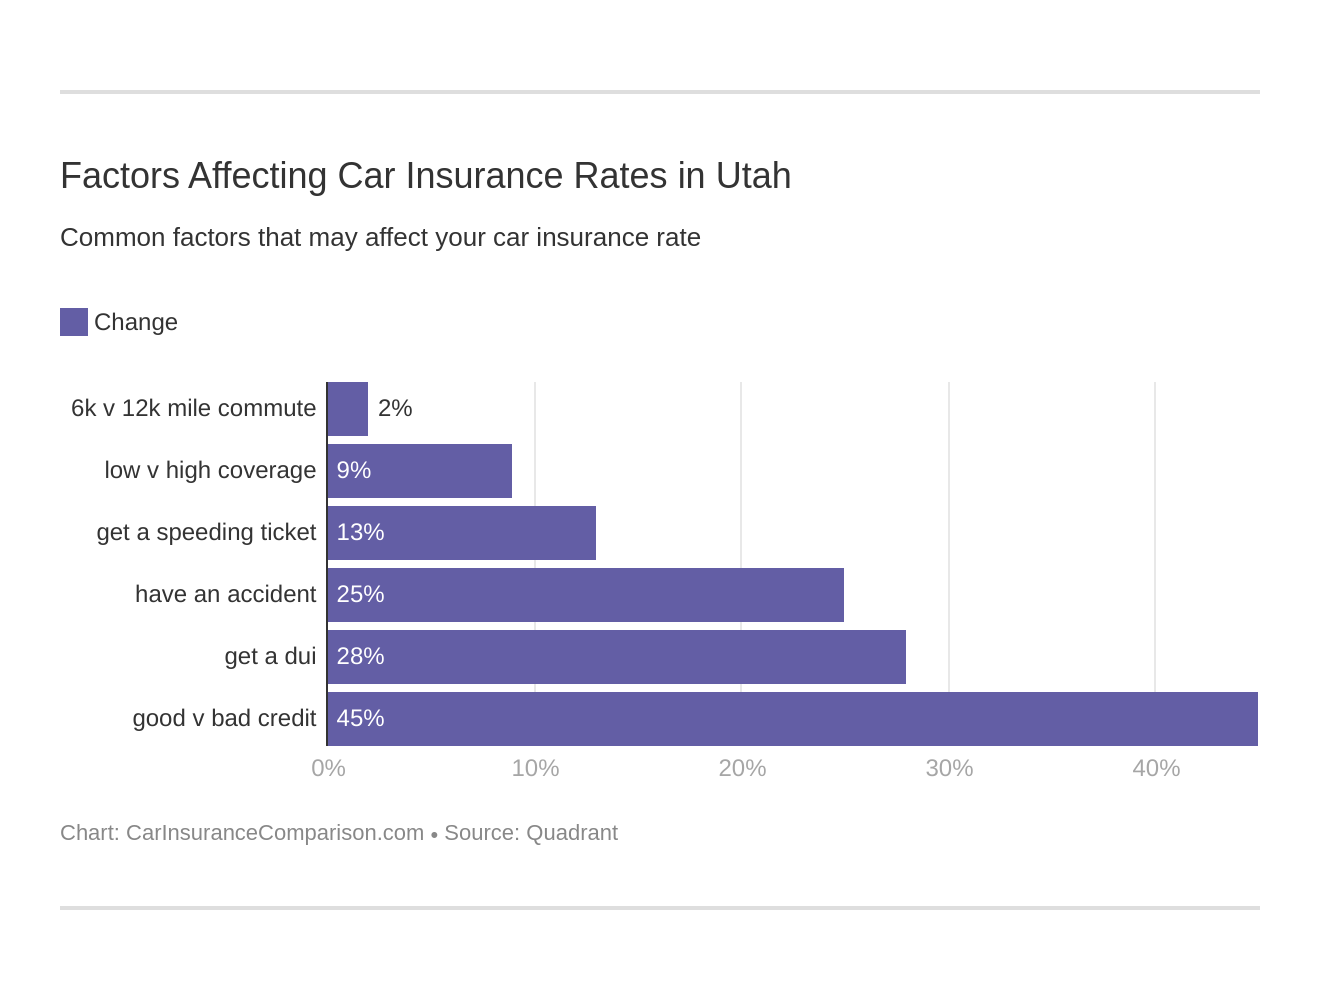 Factors Affecting Car Insurance Rates in Utah